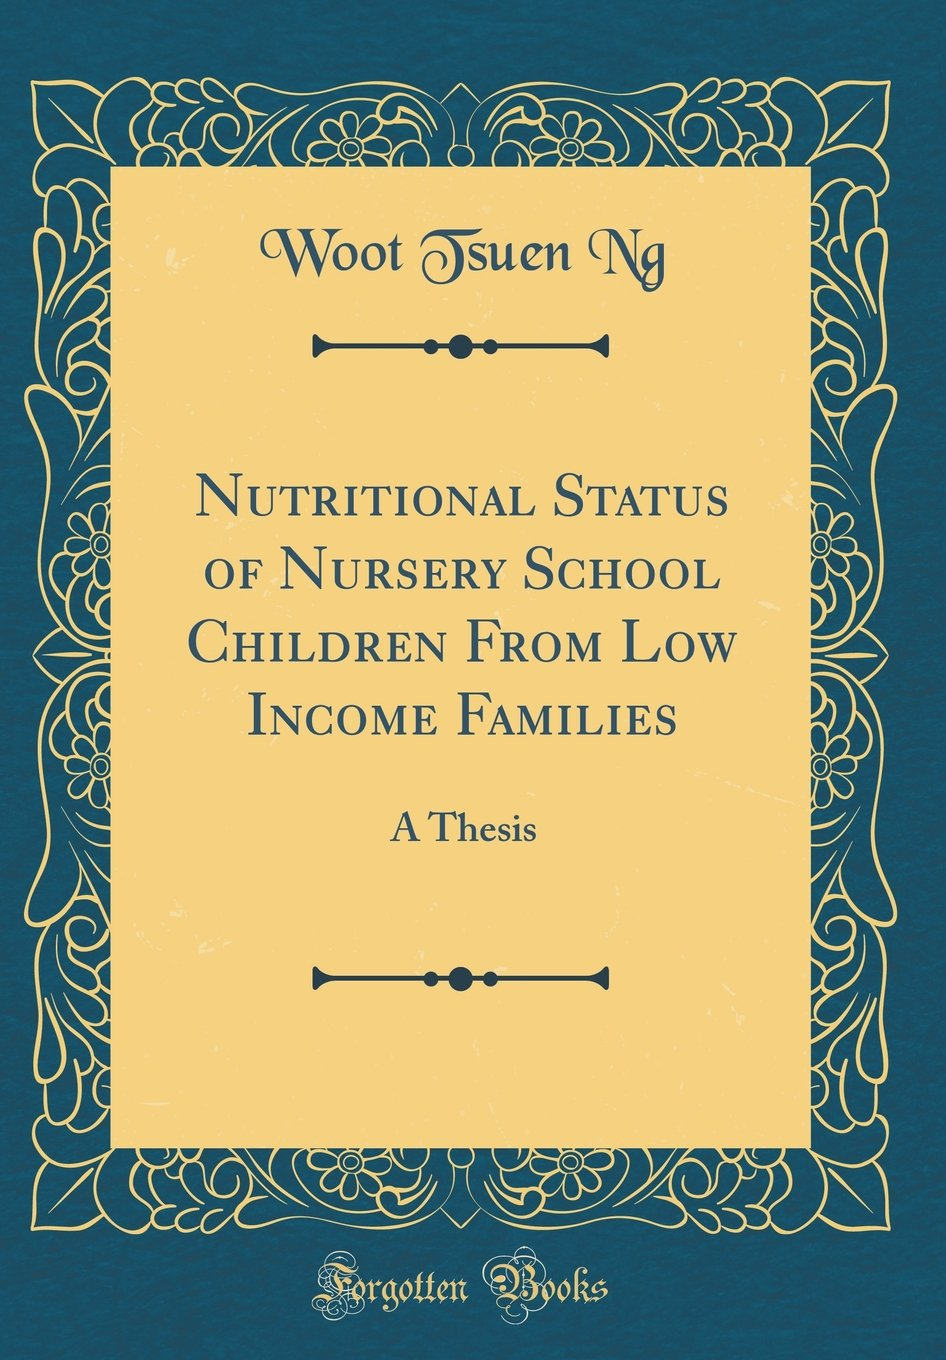 research on nutritional status